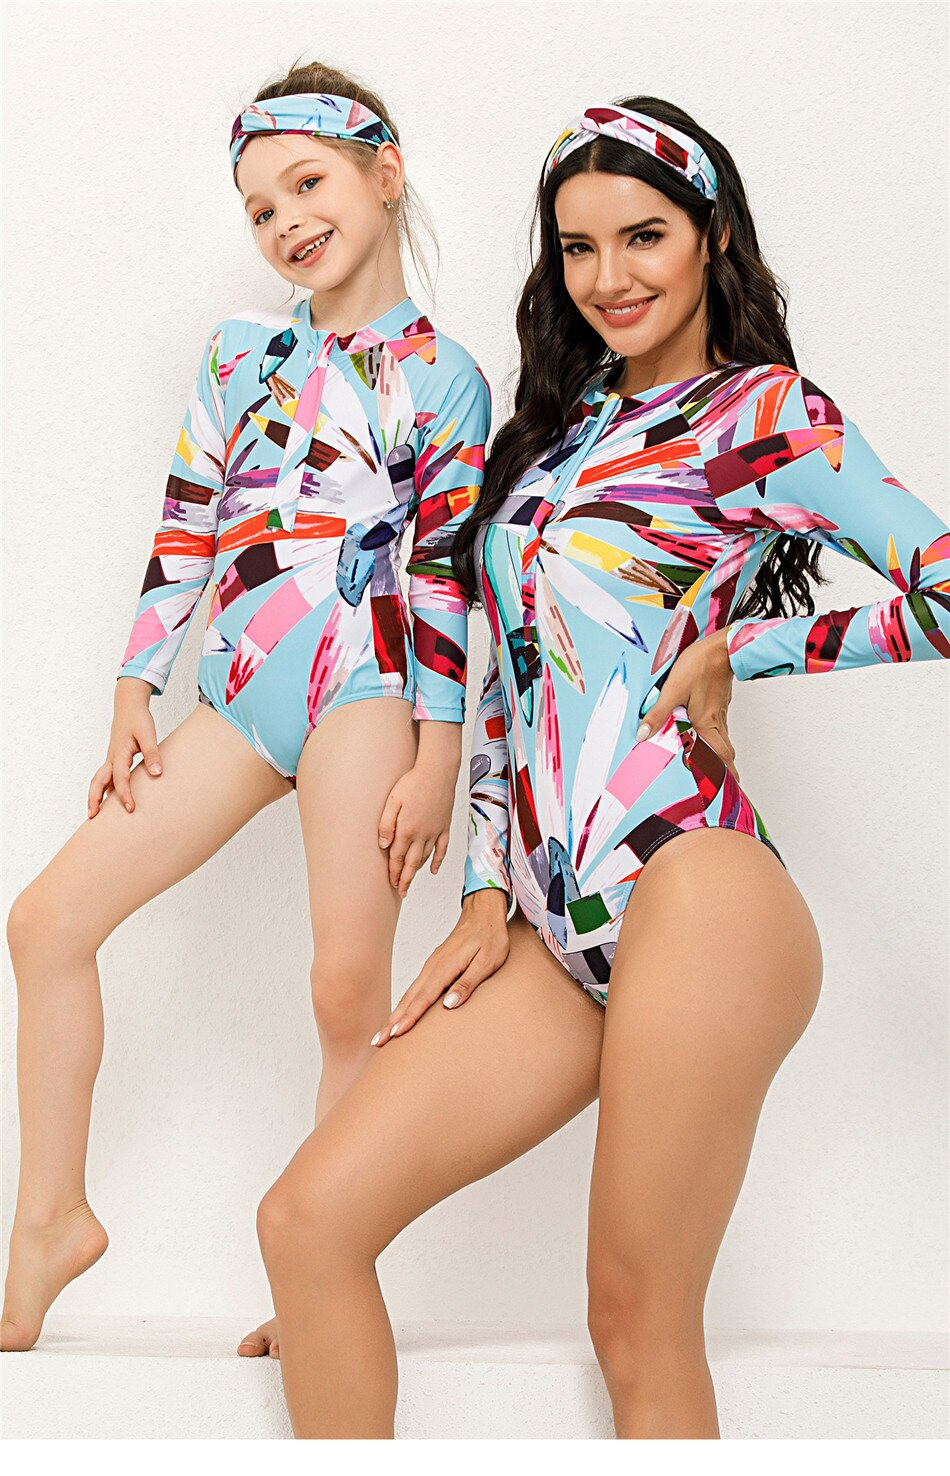 basel mommy and me swimsuit www.ellmii.com